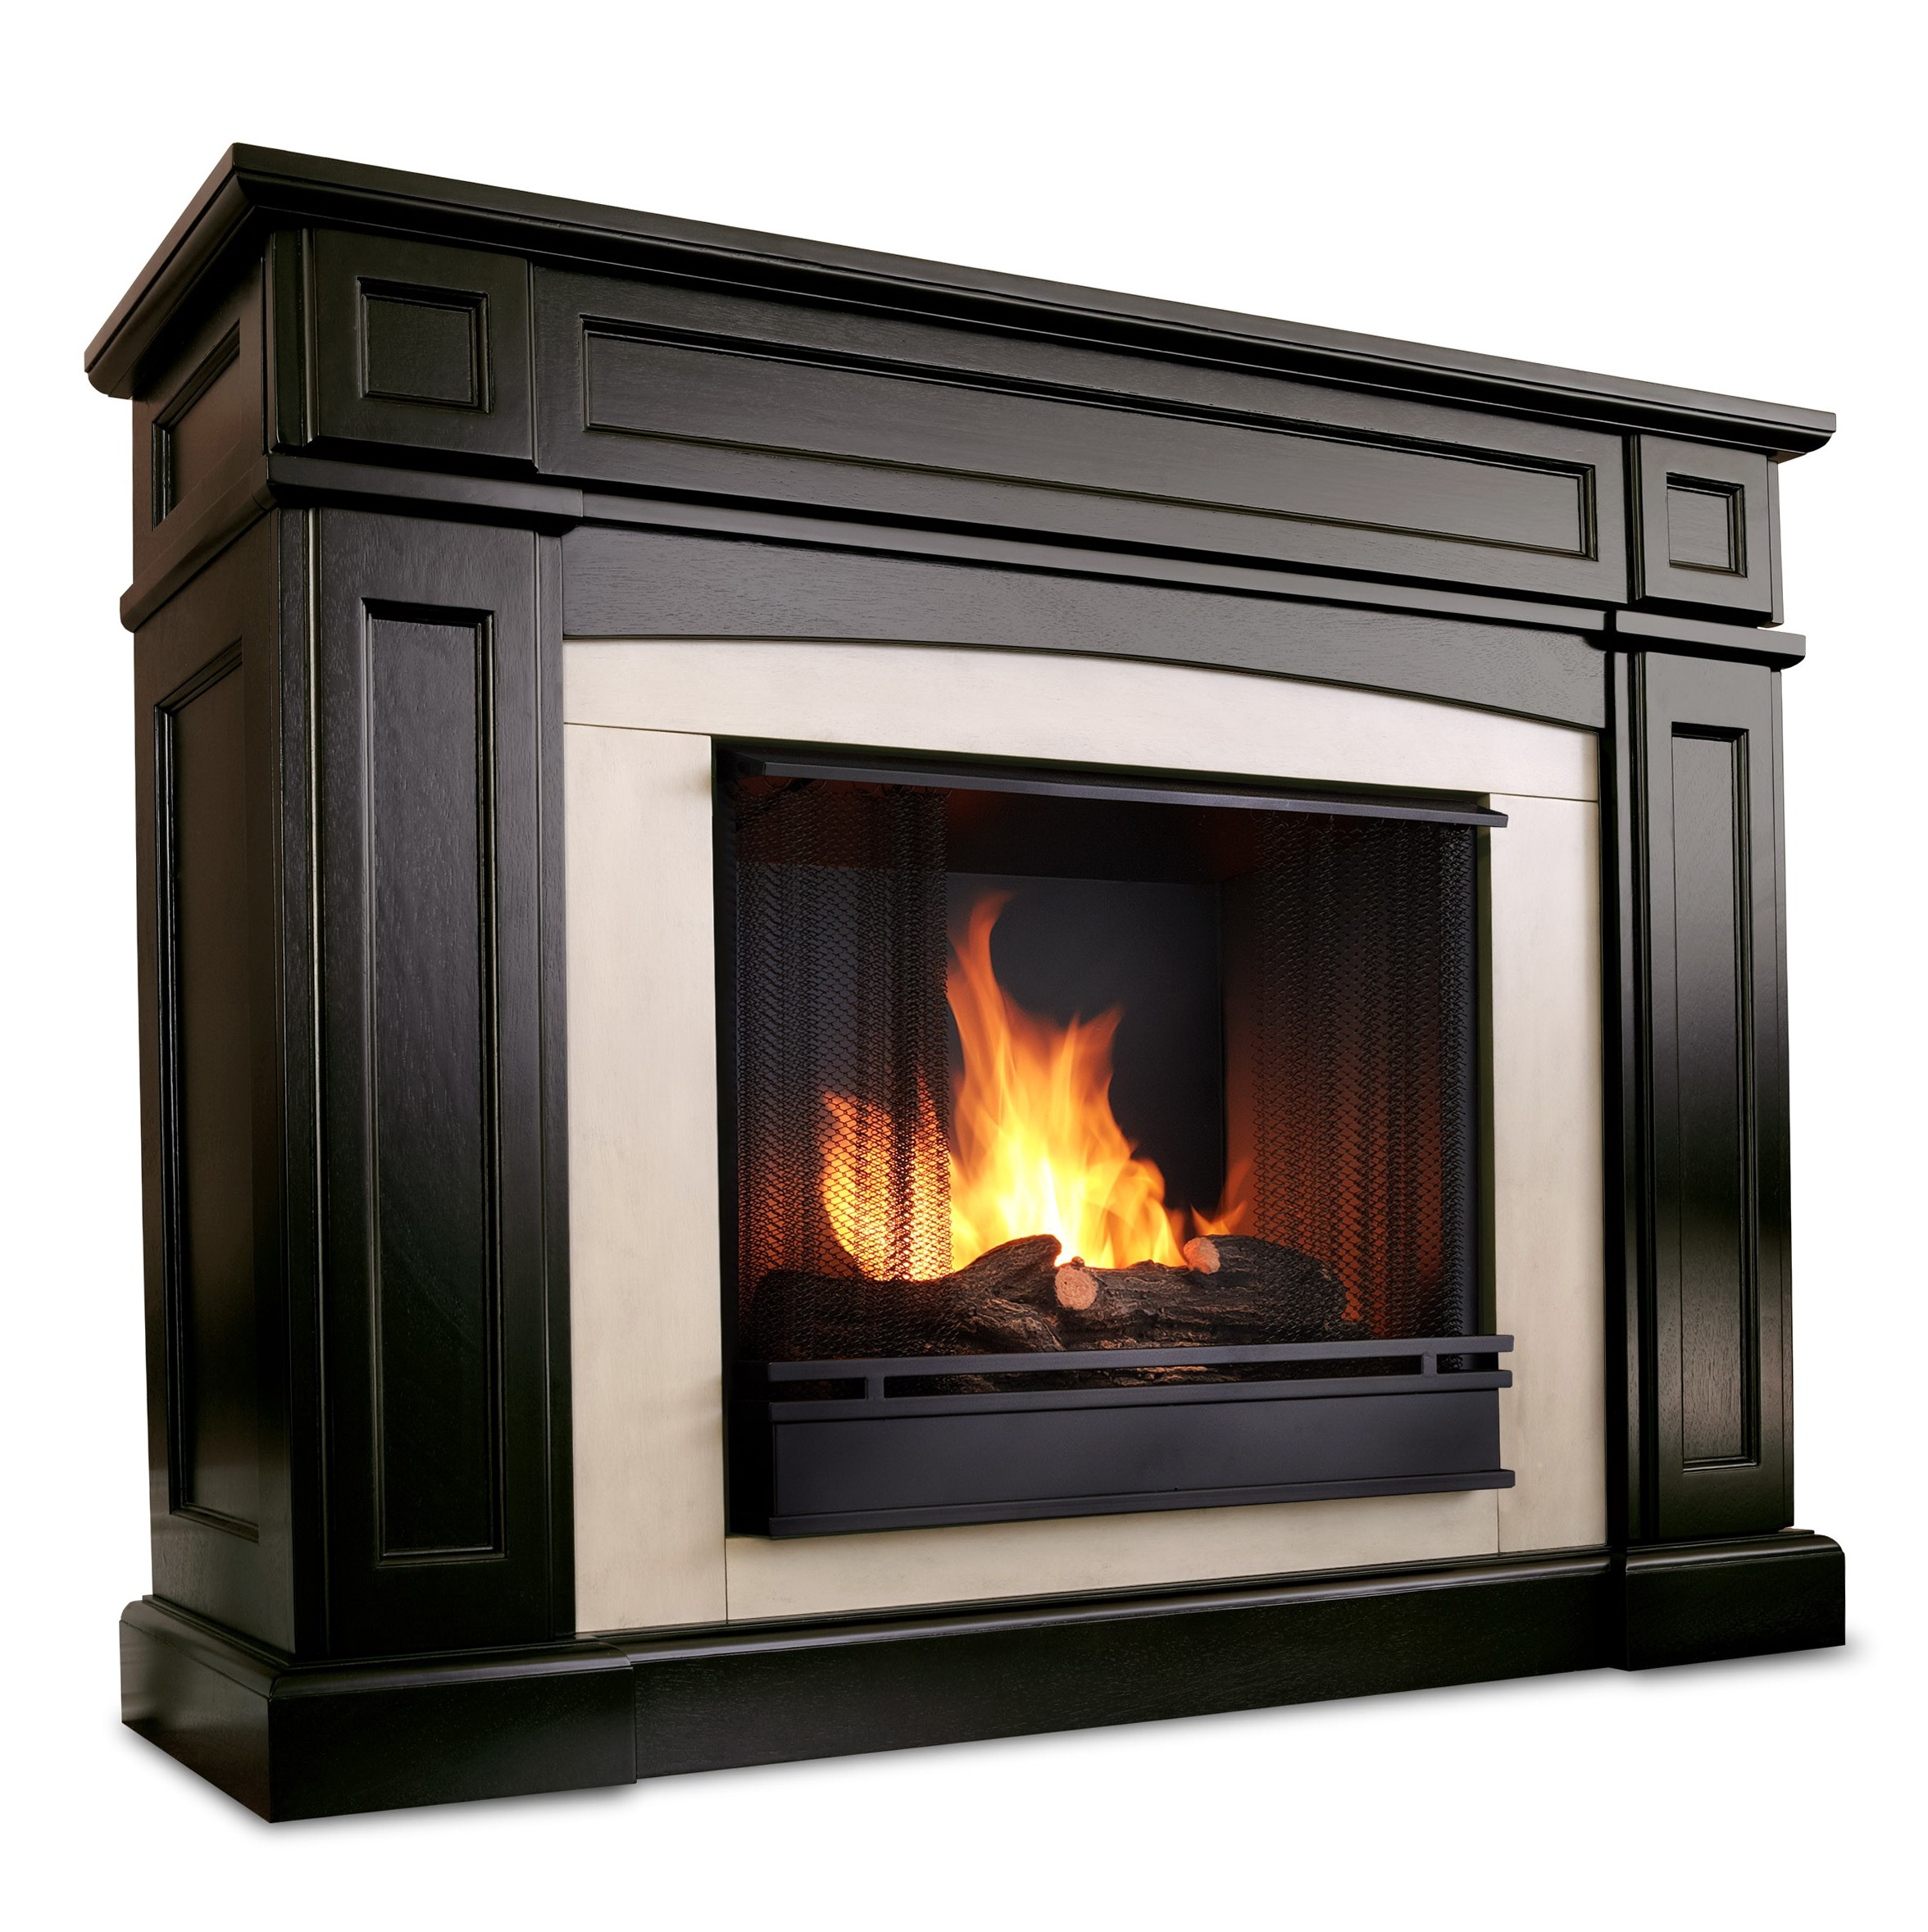 Ventless Propane Fireplace With Blower Home Design Ideas